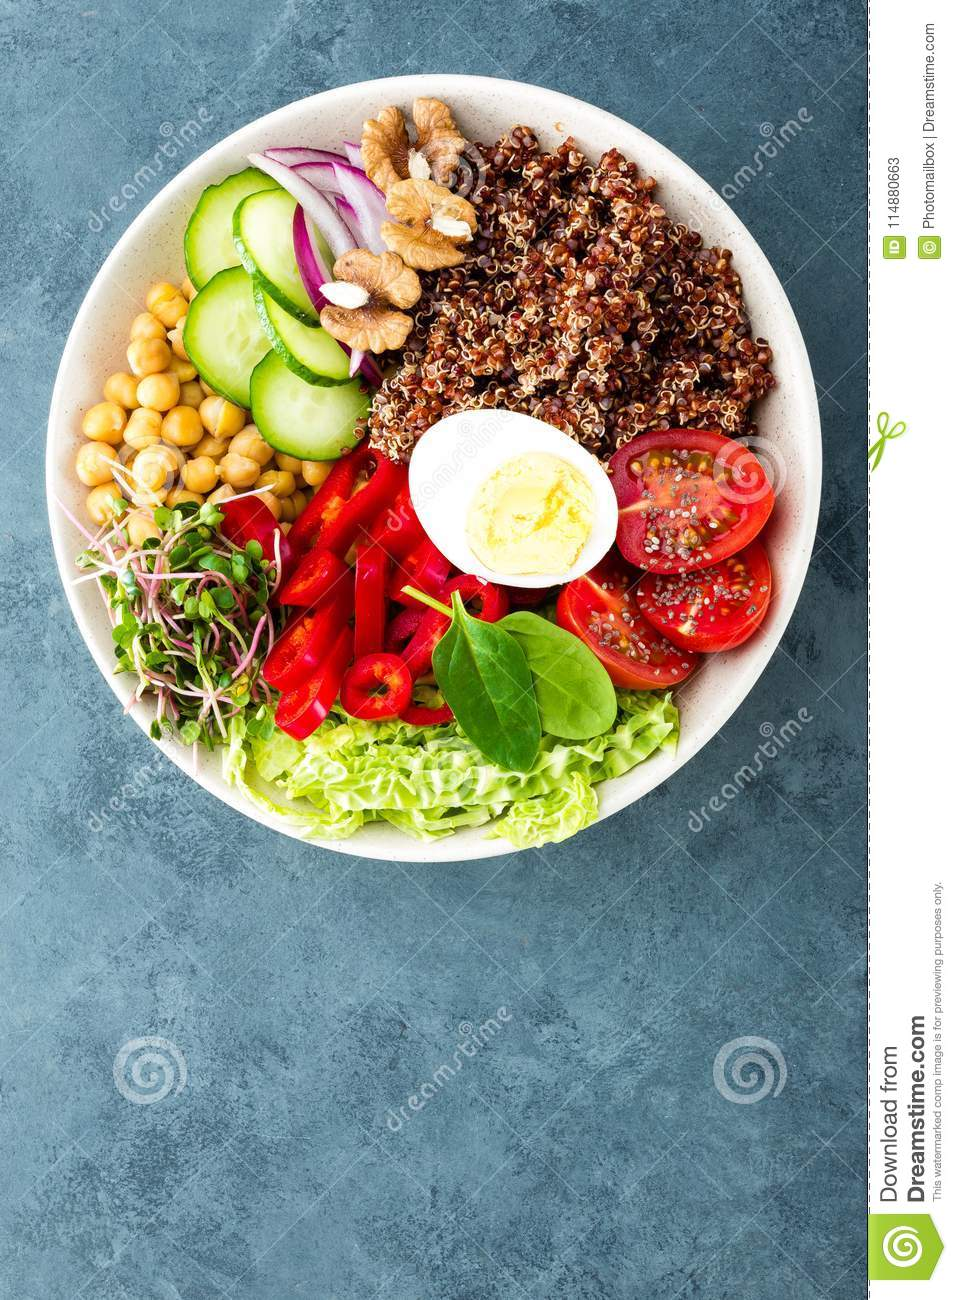 Egg Spinach Bell Pepper Bowls advise